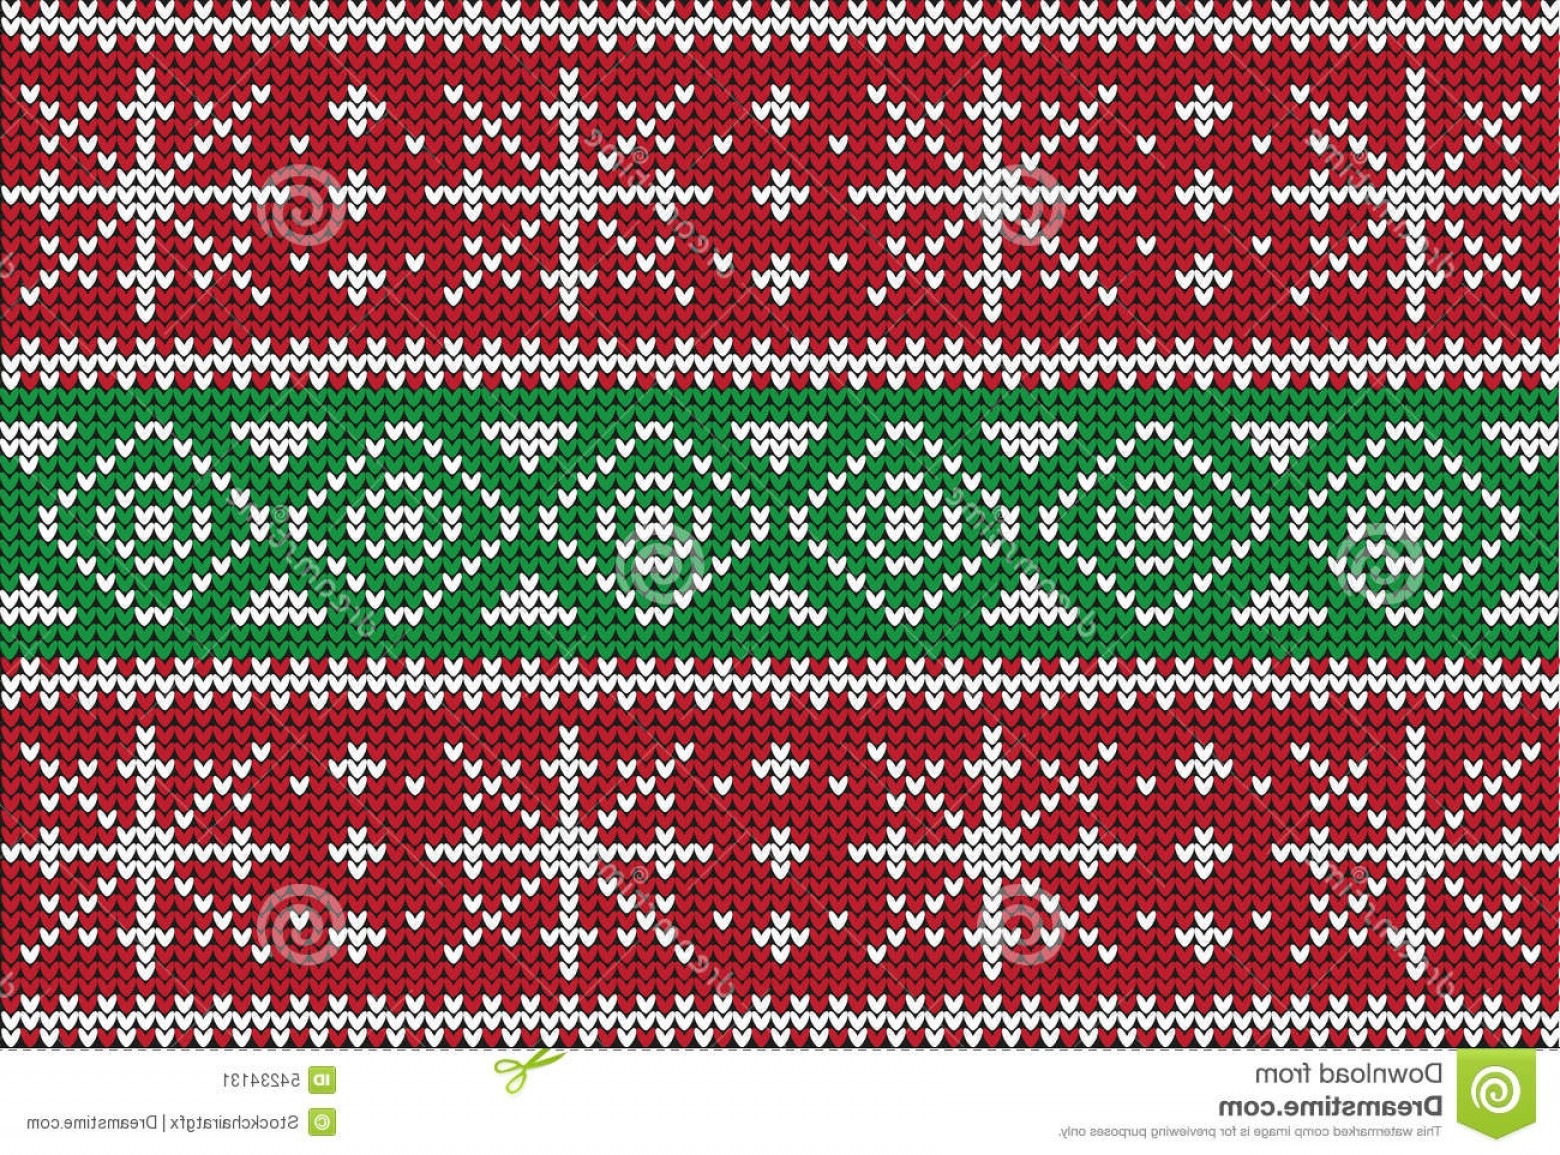 Christmas Sweater Design Vector: Stock Illustration Christmas Sweater Design Seamless Pattern Vector Image